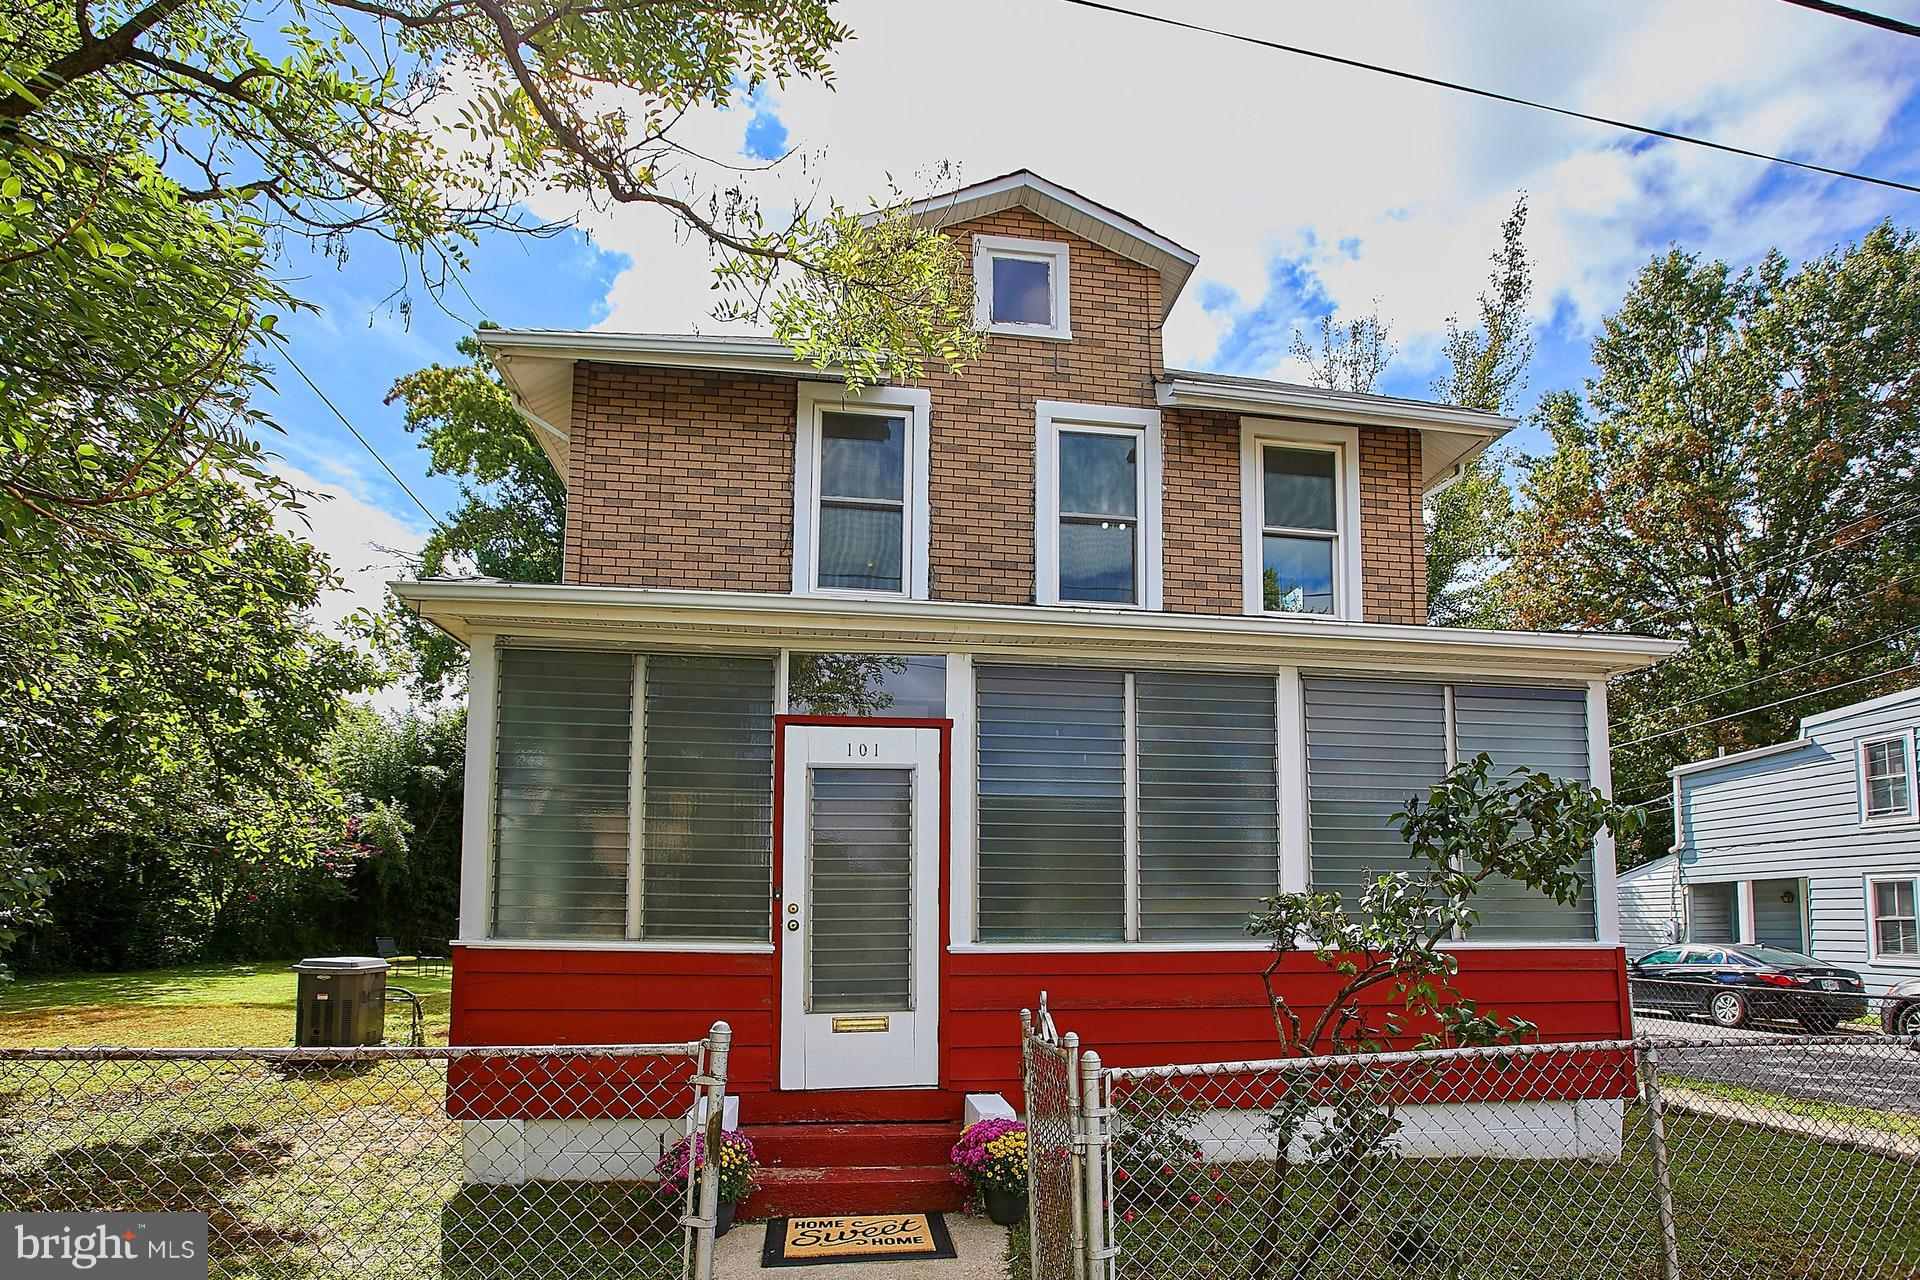 """This home is one not to miss! Step back in time with this traditional-style house built in 1912. Includes many original appointments such as HW floors thru-out, tall ceilings, arch. details, etc.; 3 BD/1BA, bright & sunny int.; Large flat yard ready for your landscaping touches; prime location in heart of Del Ray, 1 blk off Mount Vernon Ave. """"SOLD AS-IS"""". Sales offer deadline: 10.02.18, 5:00 pm."""